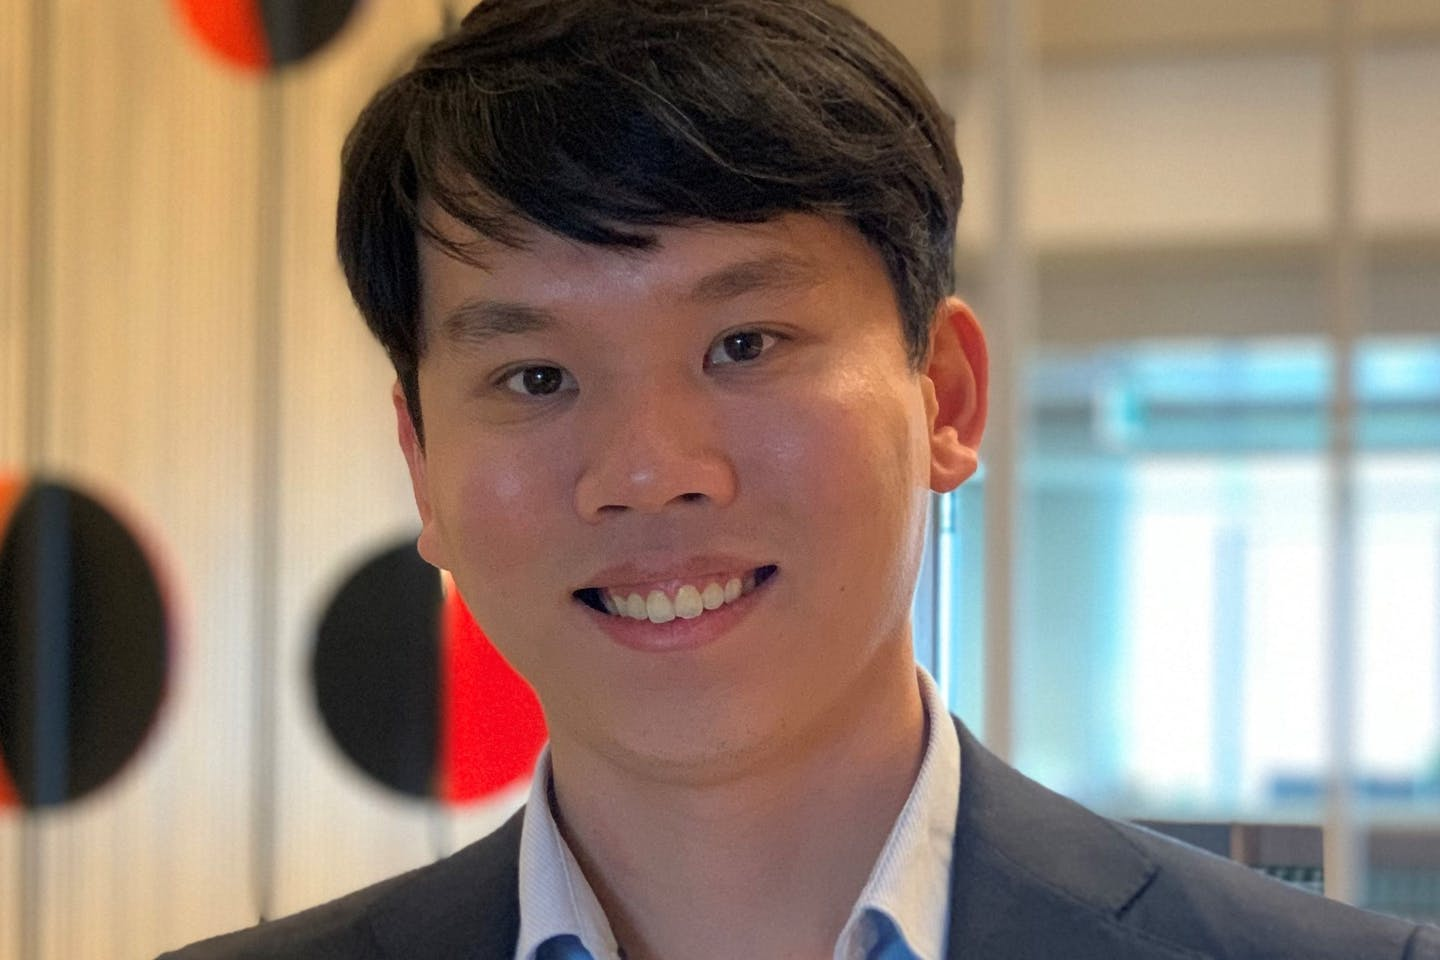 Alvin Seo joins Maxeon Solar Technologies, a recent spinoff from US-based SunPower, after more than 5 years in Singtel. Image: Alvin Seo